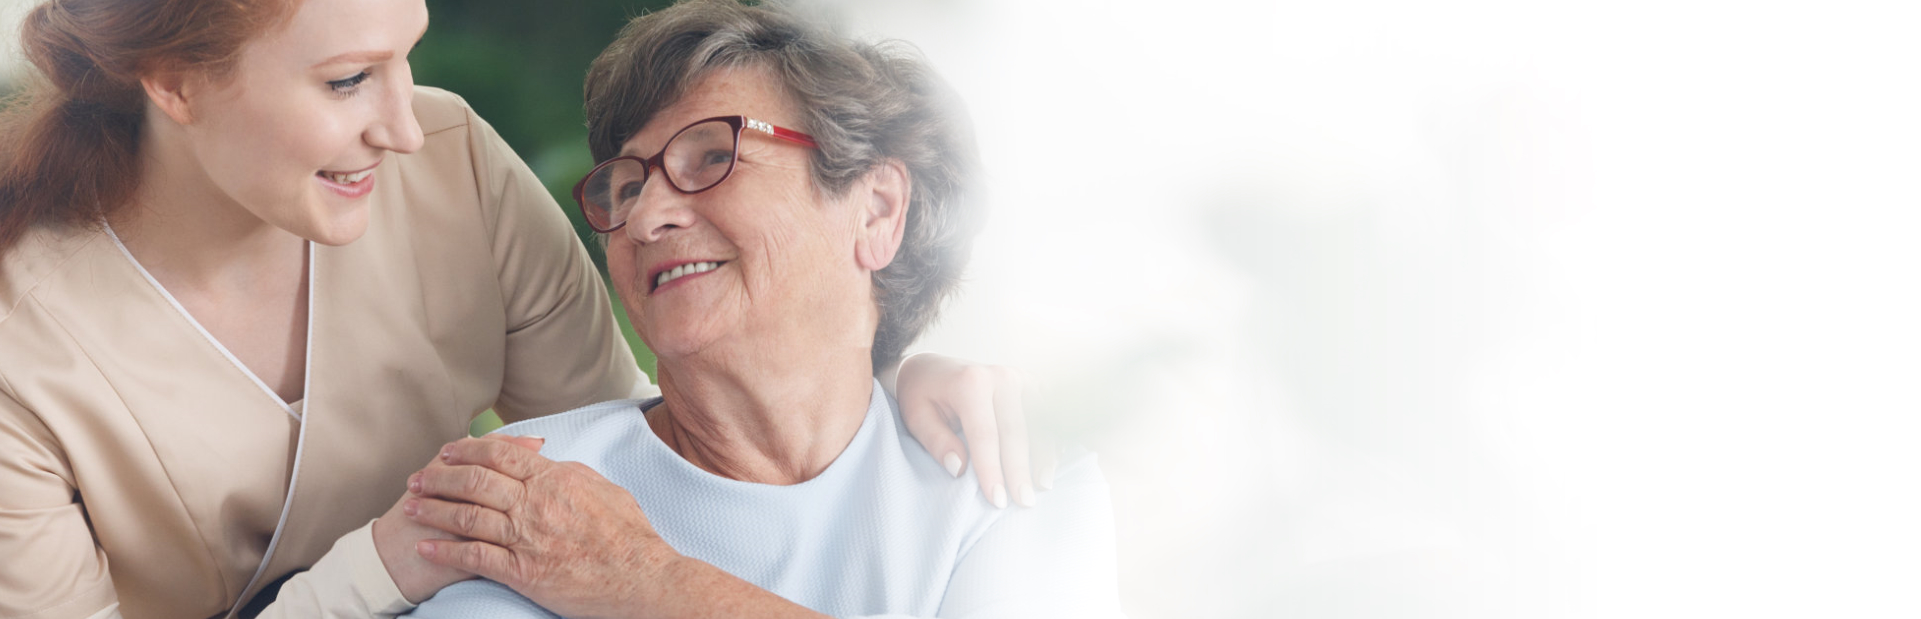 caregiver and senior woman smiling with each other